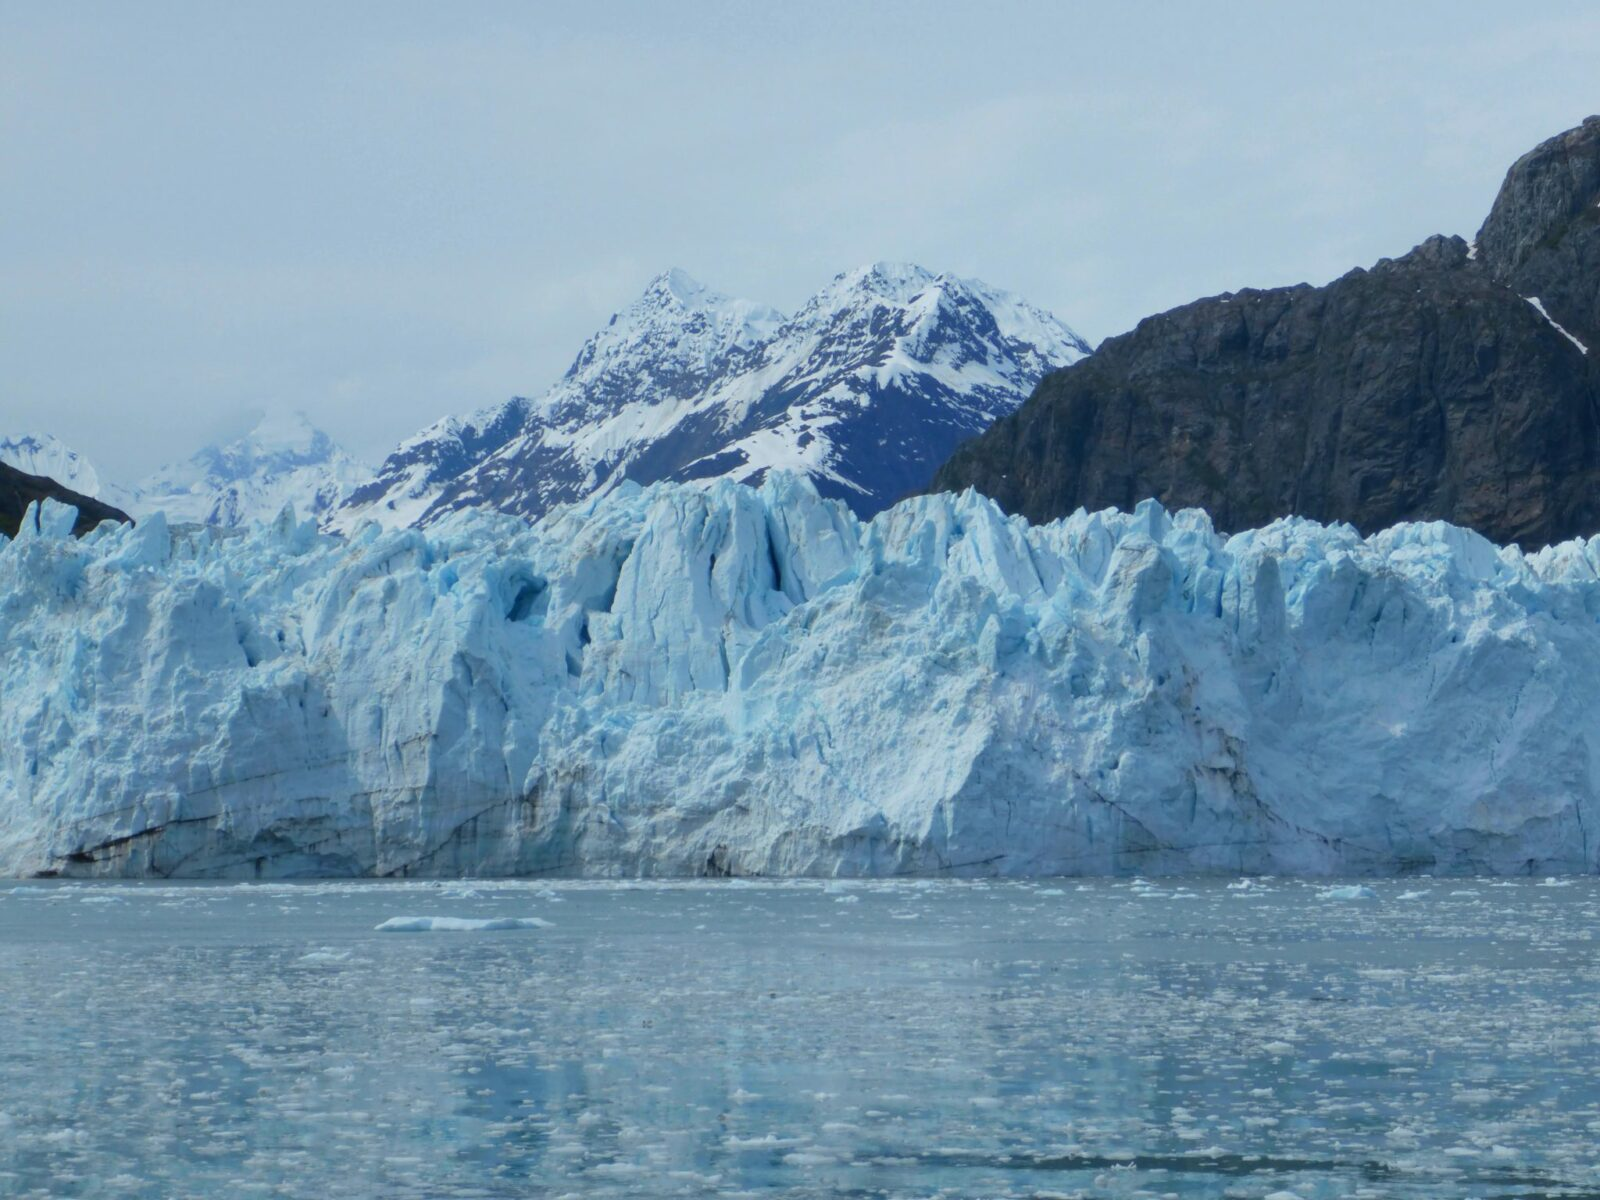 A tidewater glacier at the head of a bay. The glacier is blue and has dark cracks. In front of the glacier are thousands of small icebergs floating in the water. In the background is a high snow capped mountain. Glacier Bay is a highlight of an Alaska itinerary